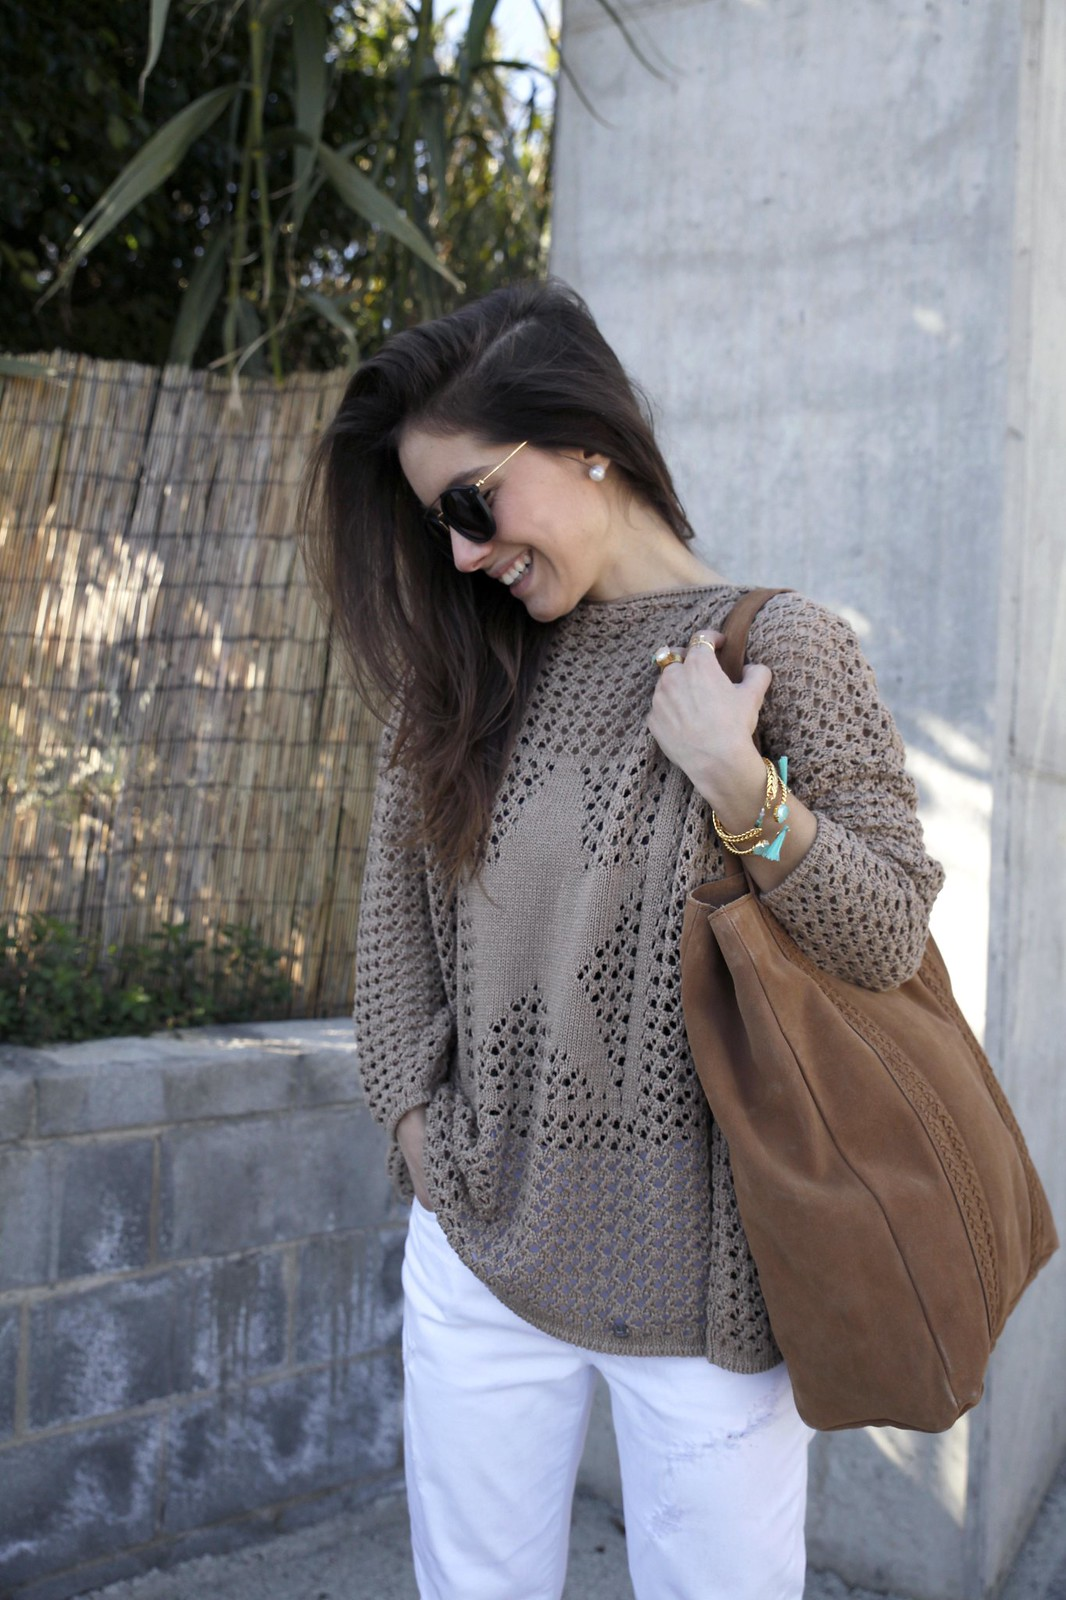 019_SPRING_NEUTRAL_OUTFIT_STREET_STYLE_FASHION_BLOGGER_INFLUENCER_BARCELONA_THEGUESTGIRL